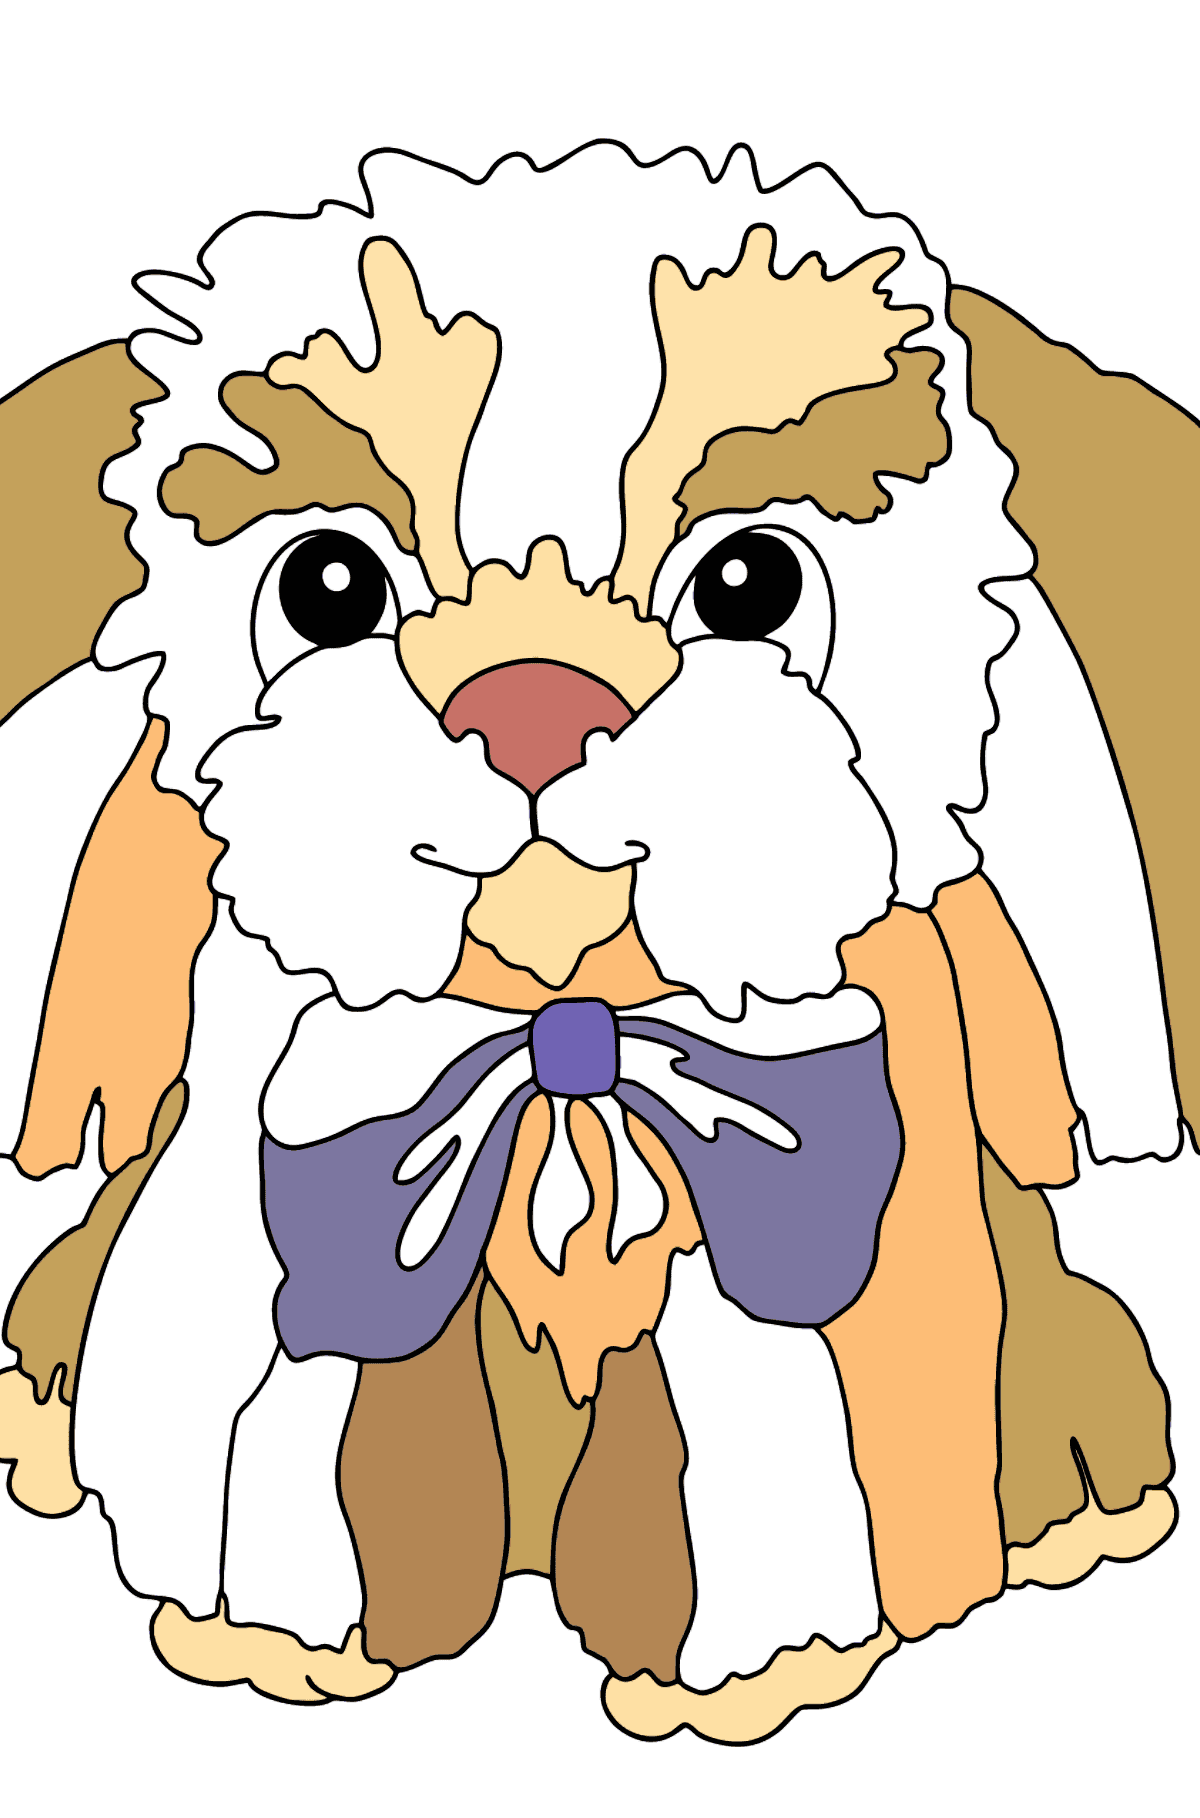 Coloring Page - A Dog with a Bow - Coloring Pages for Kids